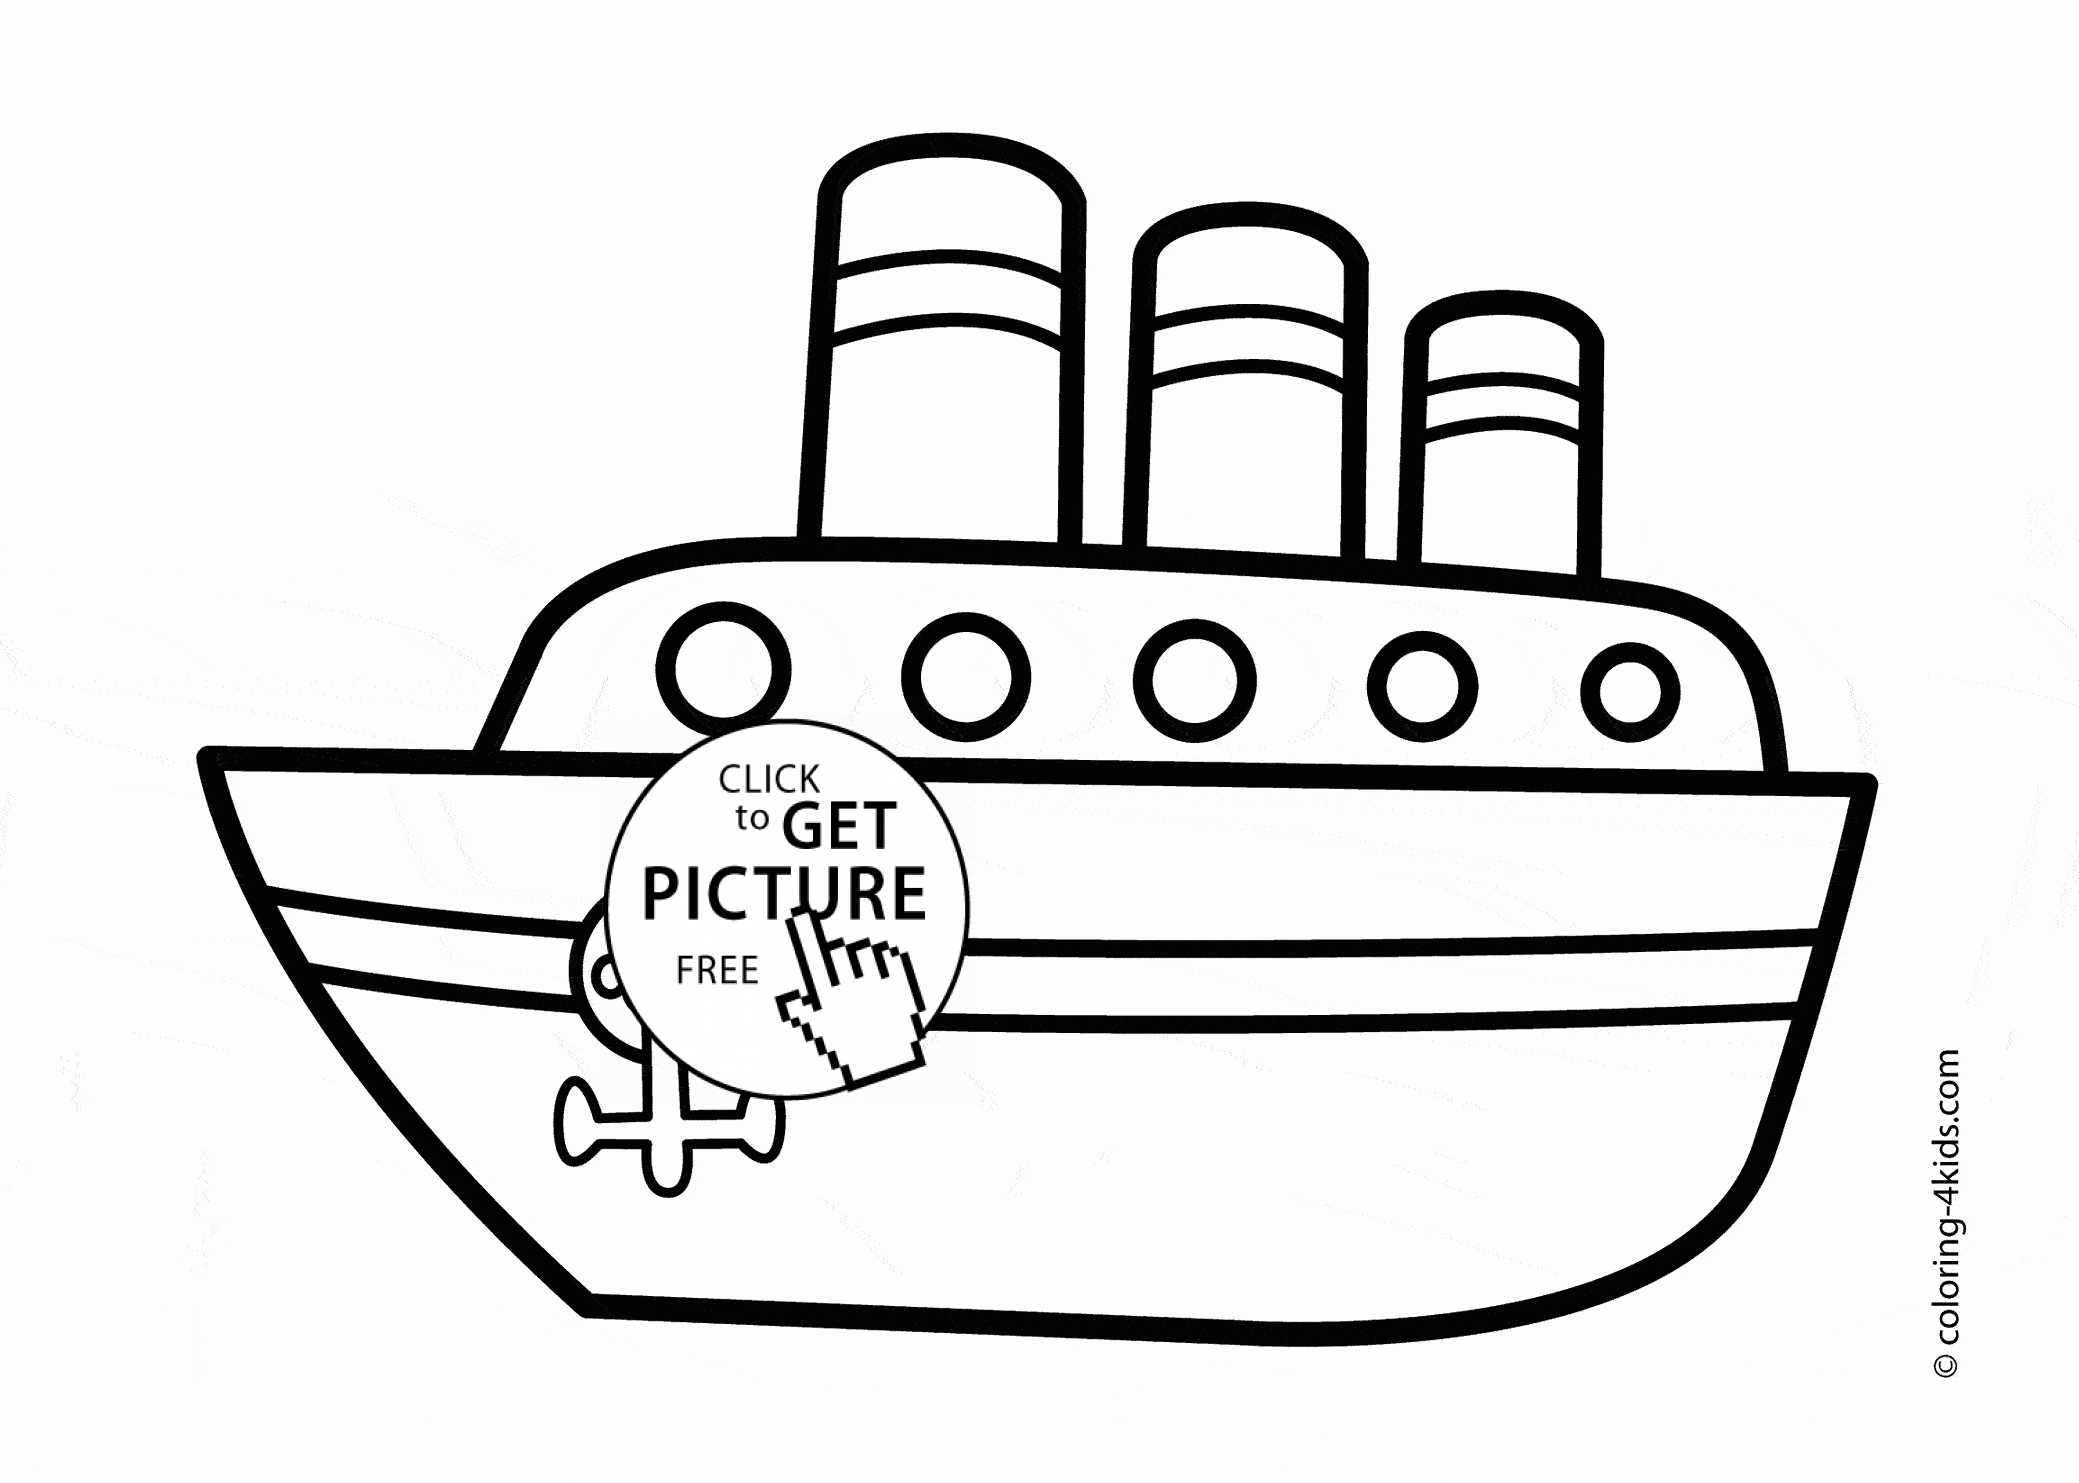 sailboat coloring page - big ship coloring page for kids transportation coloring pages printables free